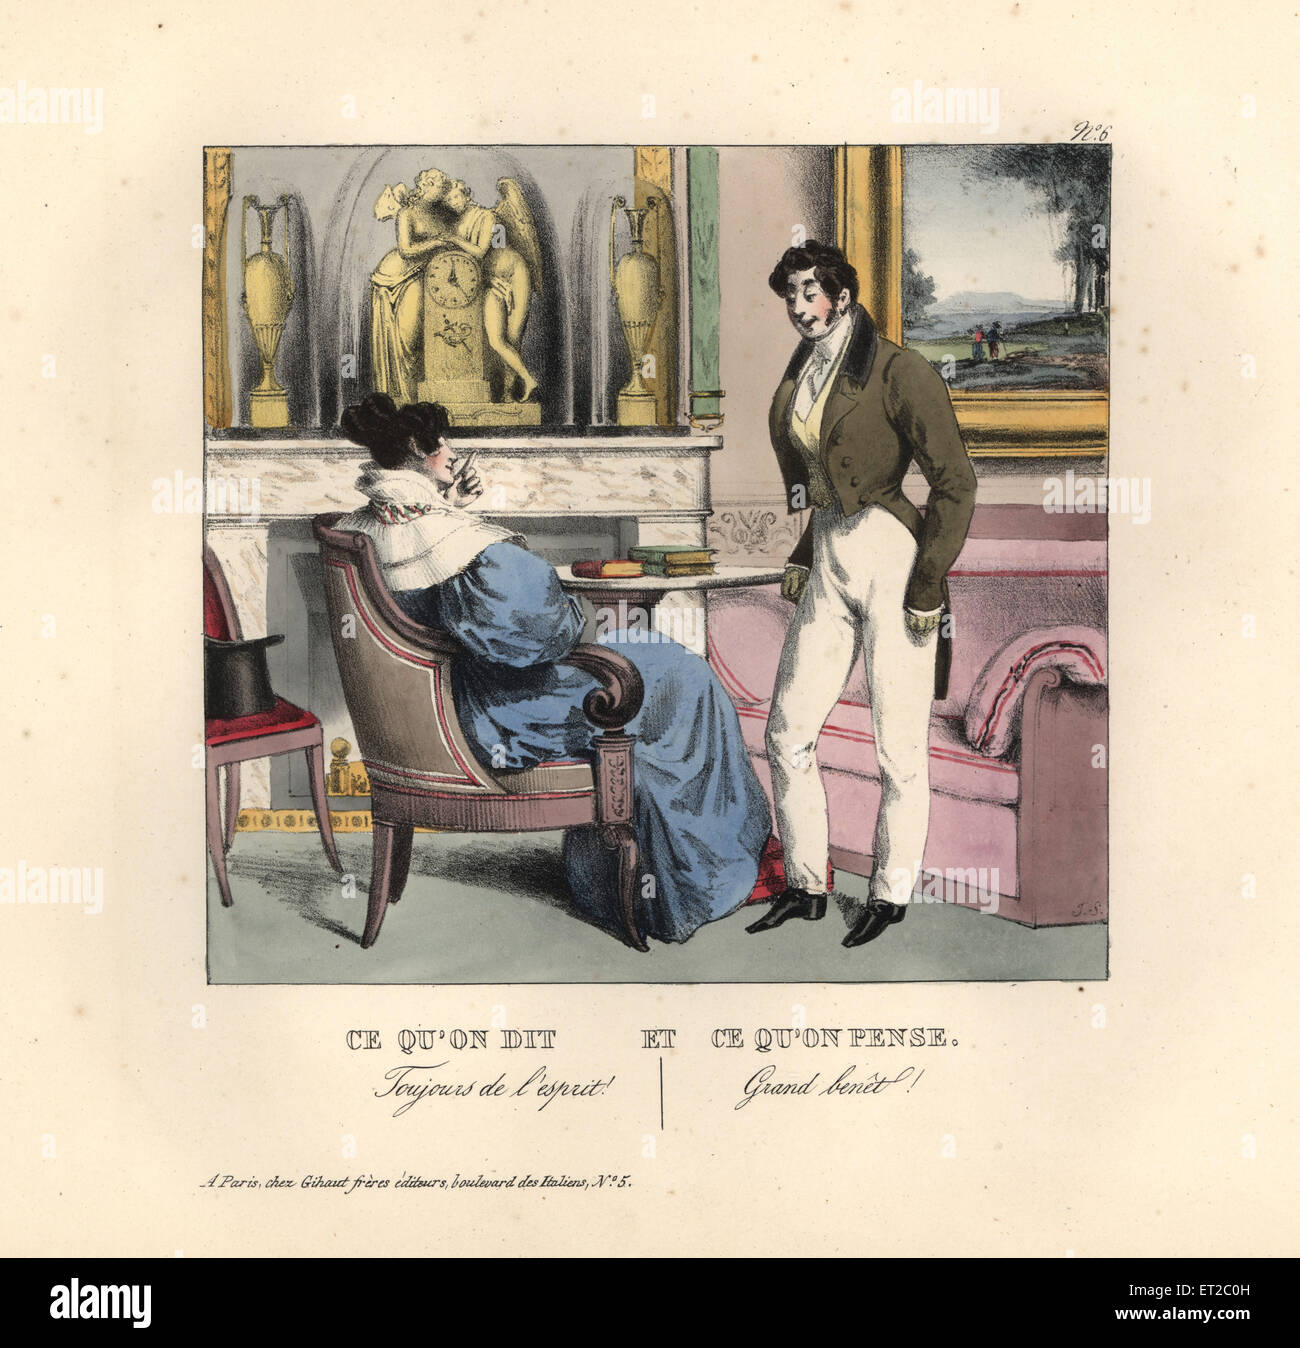 Lady flattering a foppish gentleman in a parlour. Always so intelligent! (You big booby!) - Stock Image